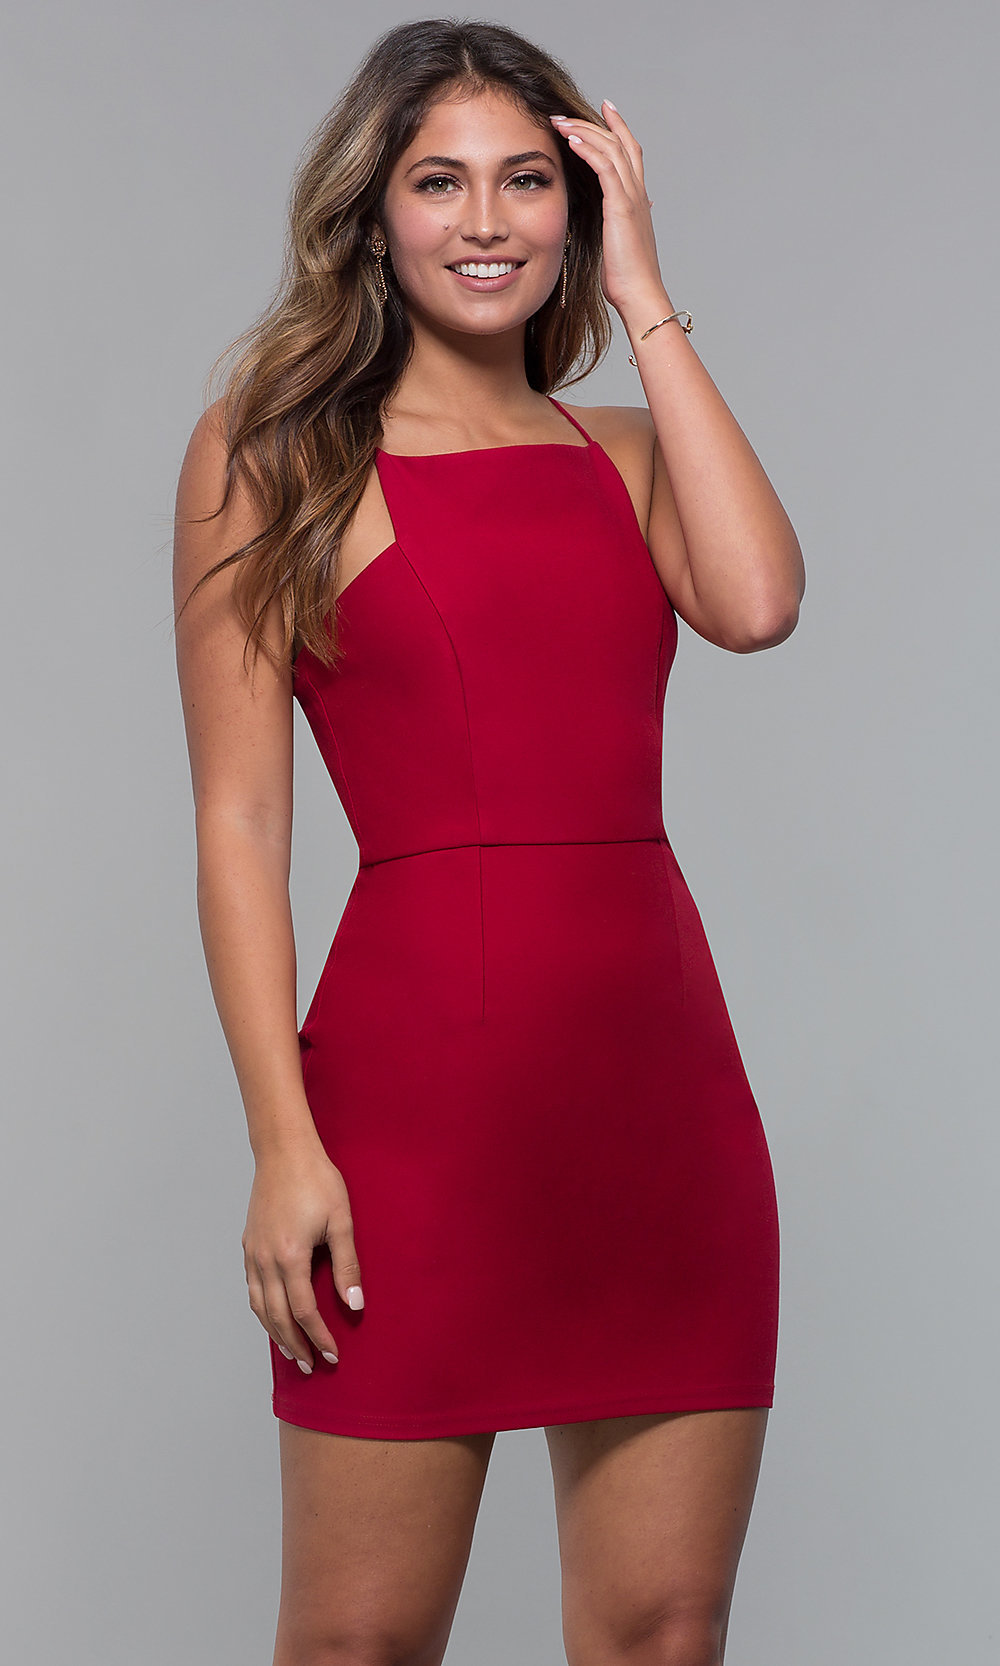 cb122bfa197 Short Red Bodycon Holiday Cocktail Party Dress